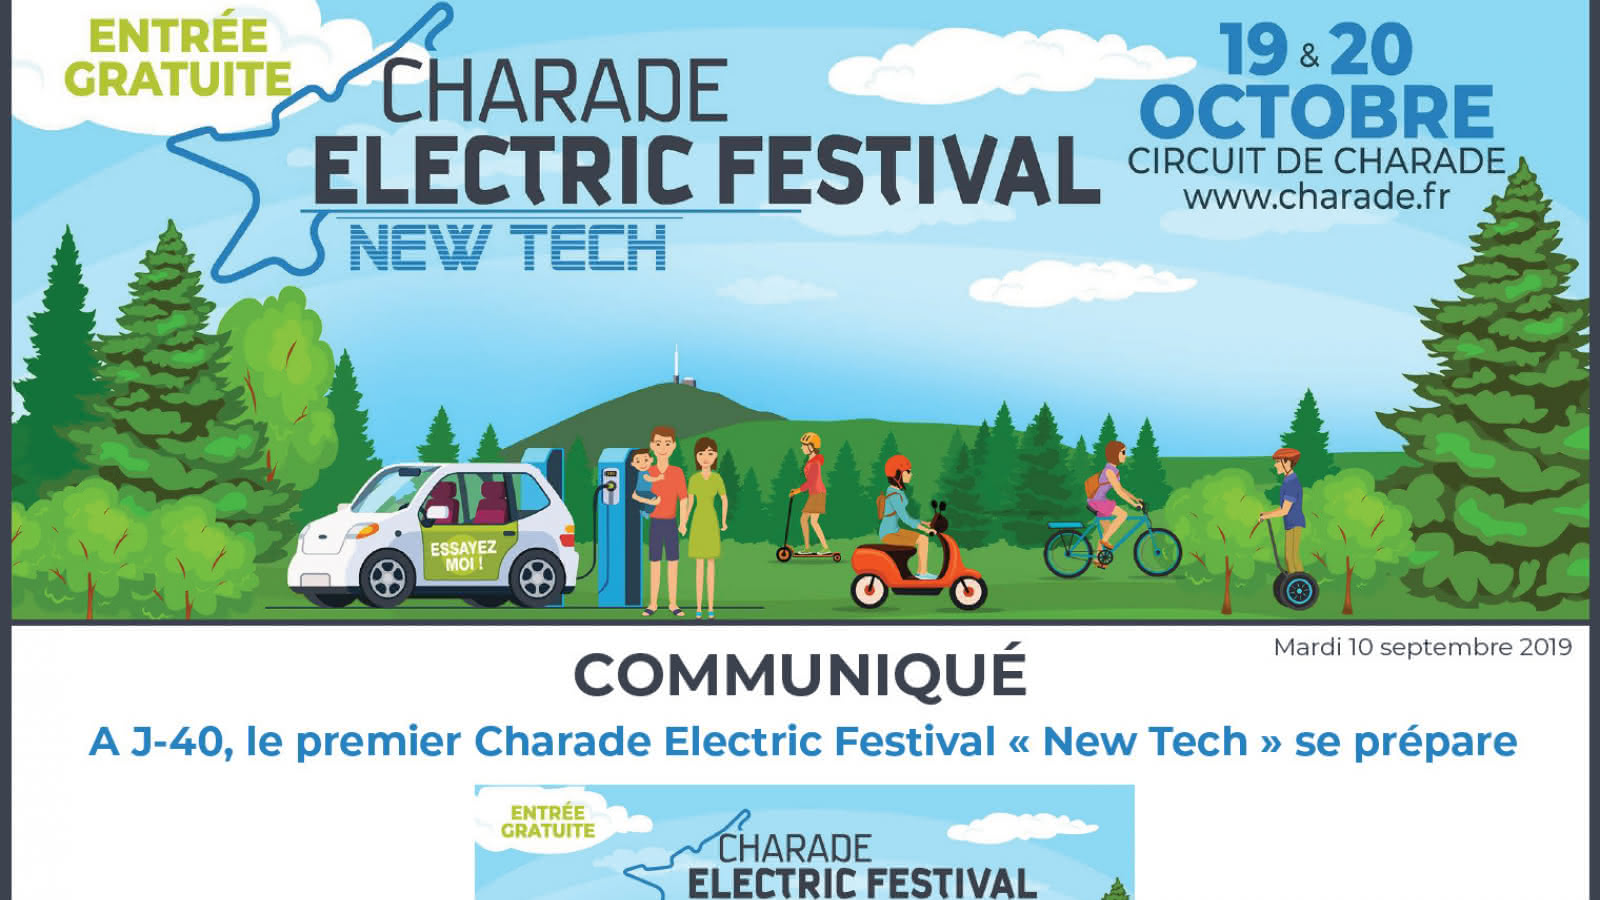 © Charade Electric Festival